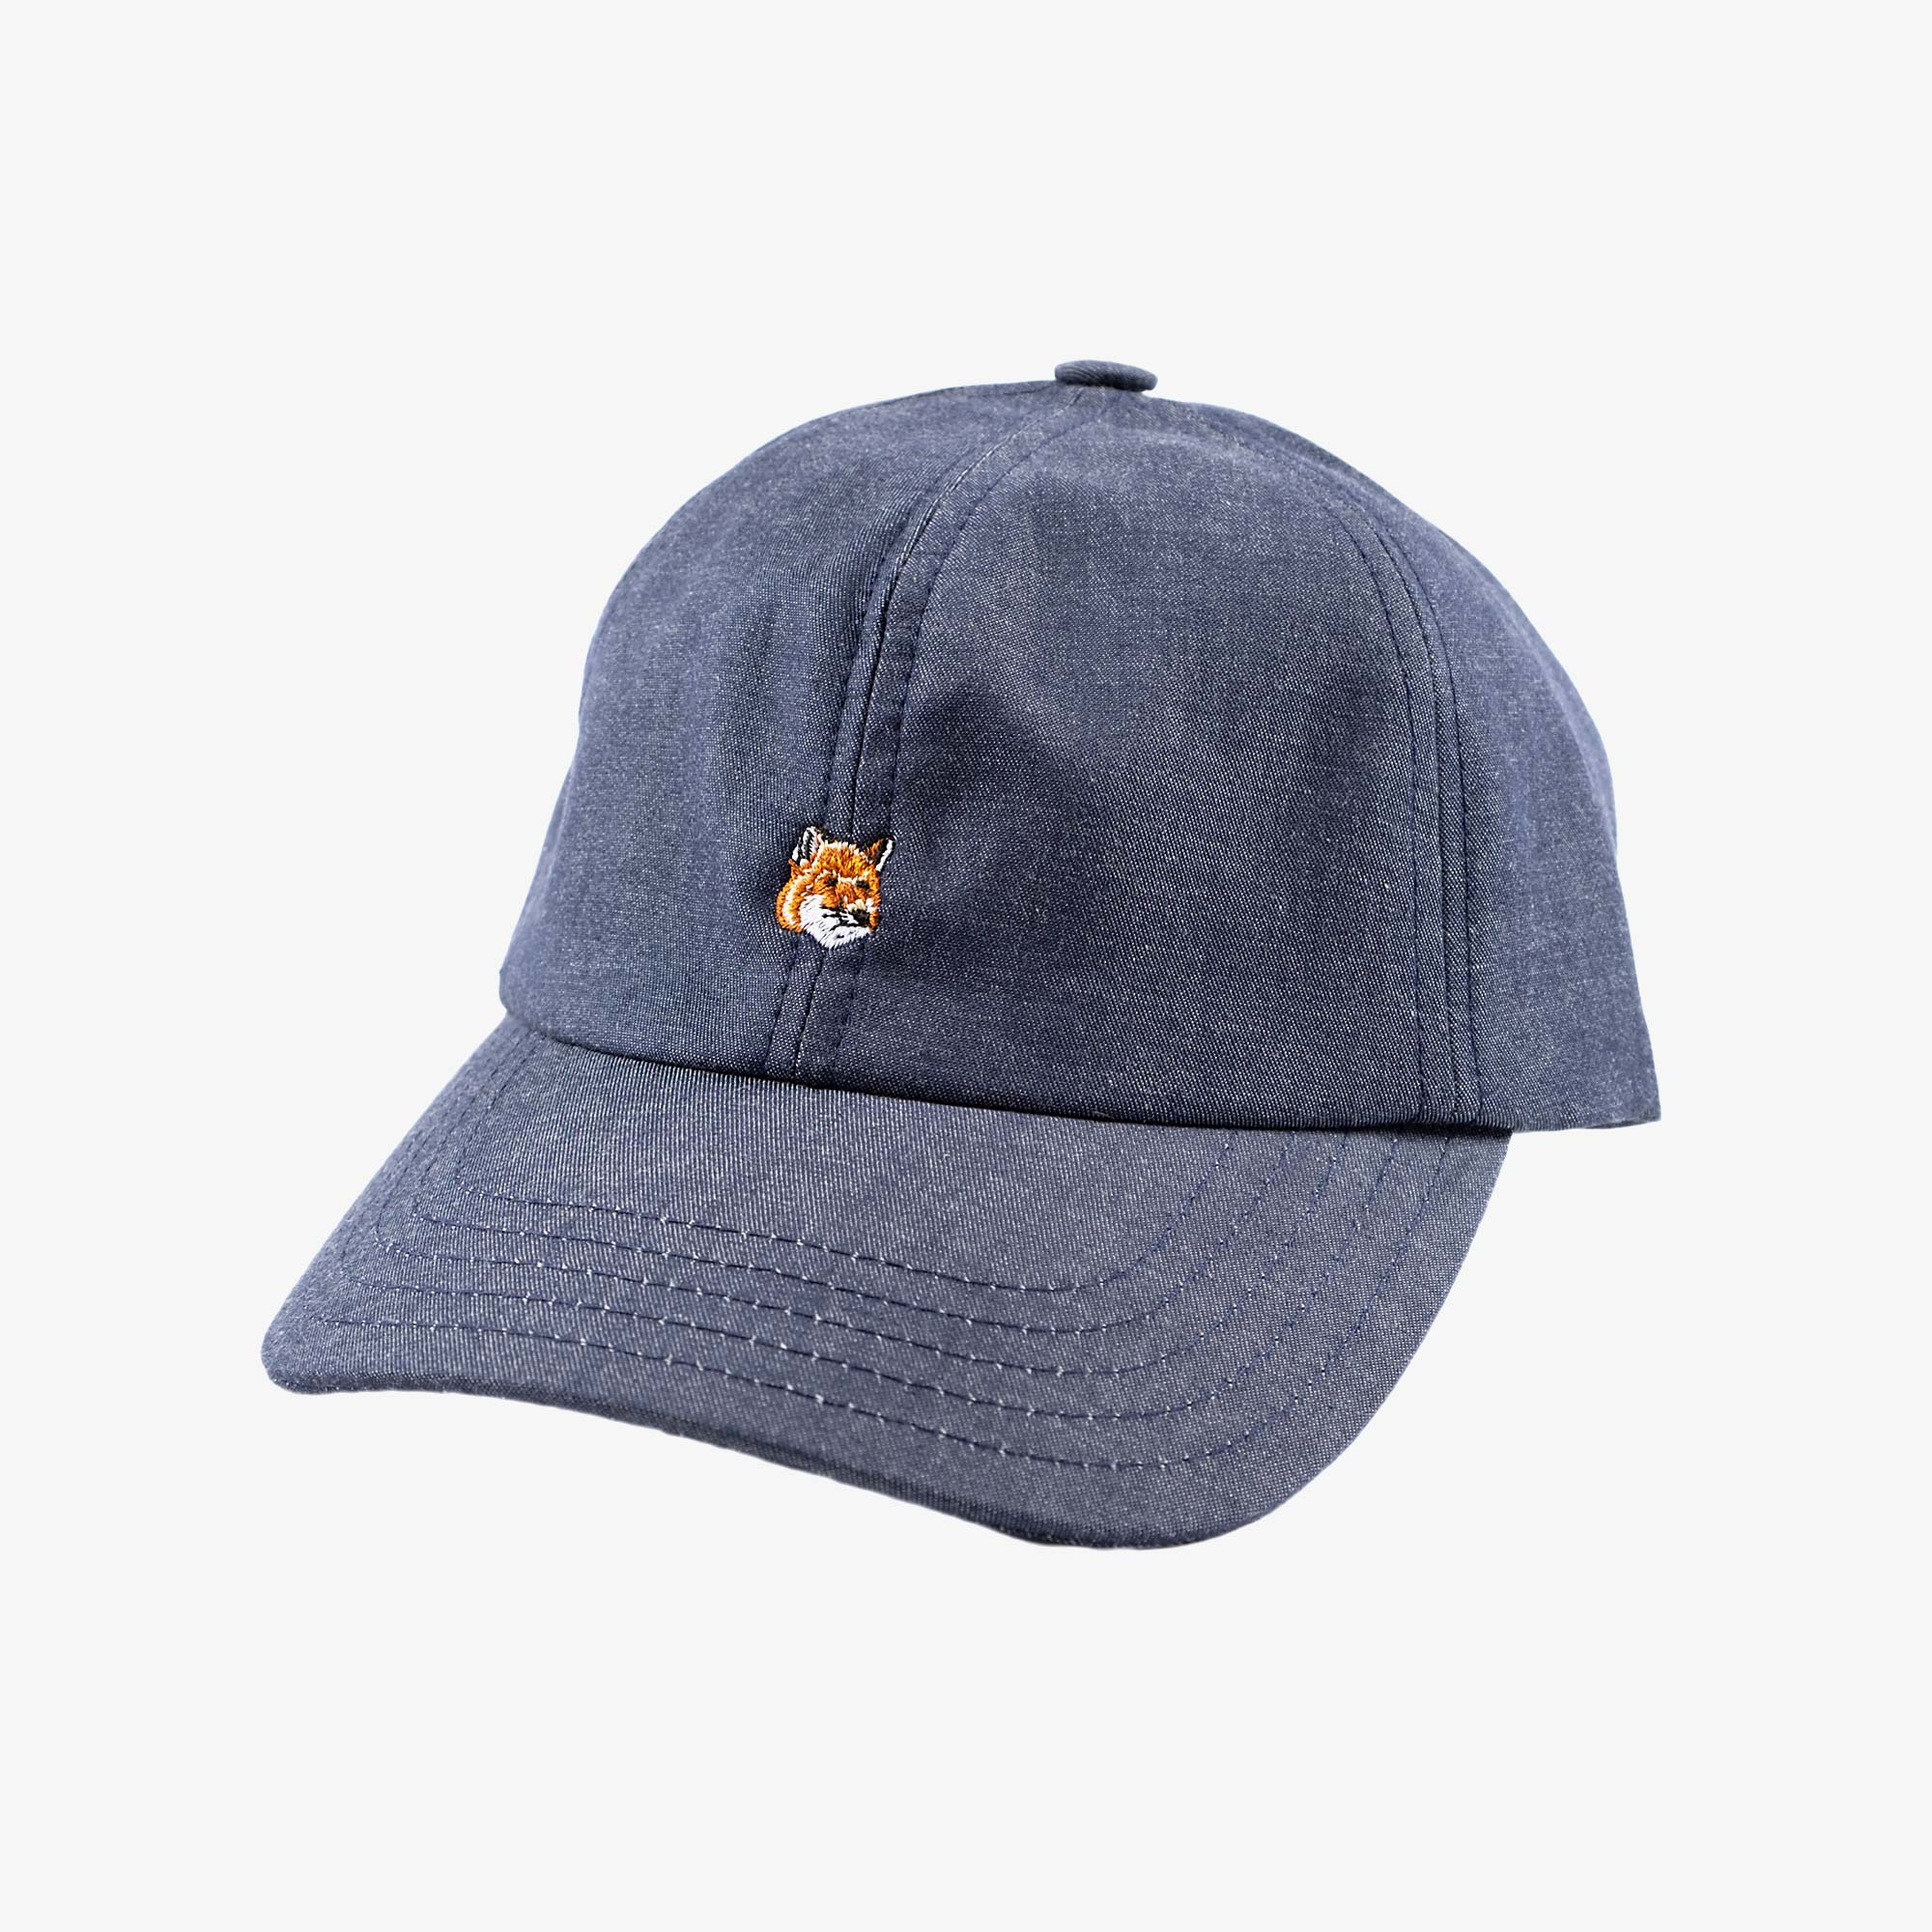 Maison Kitsune Small Fox Head Cap - Navy 1